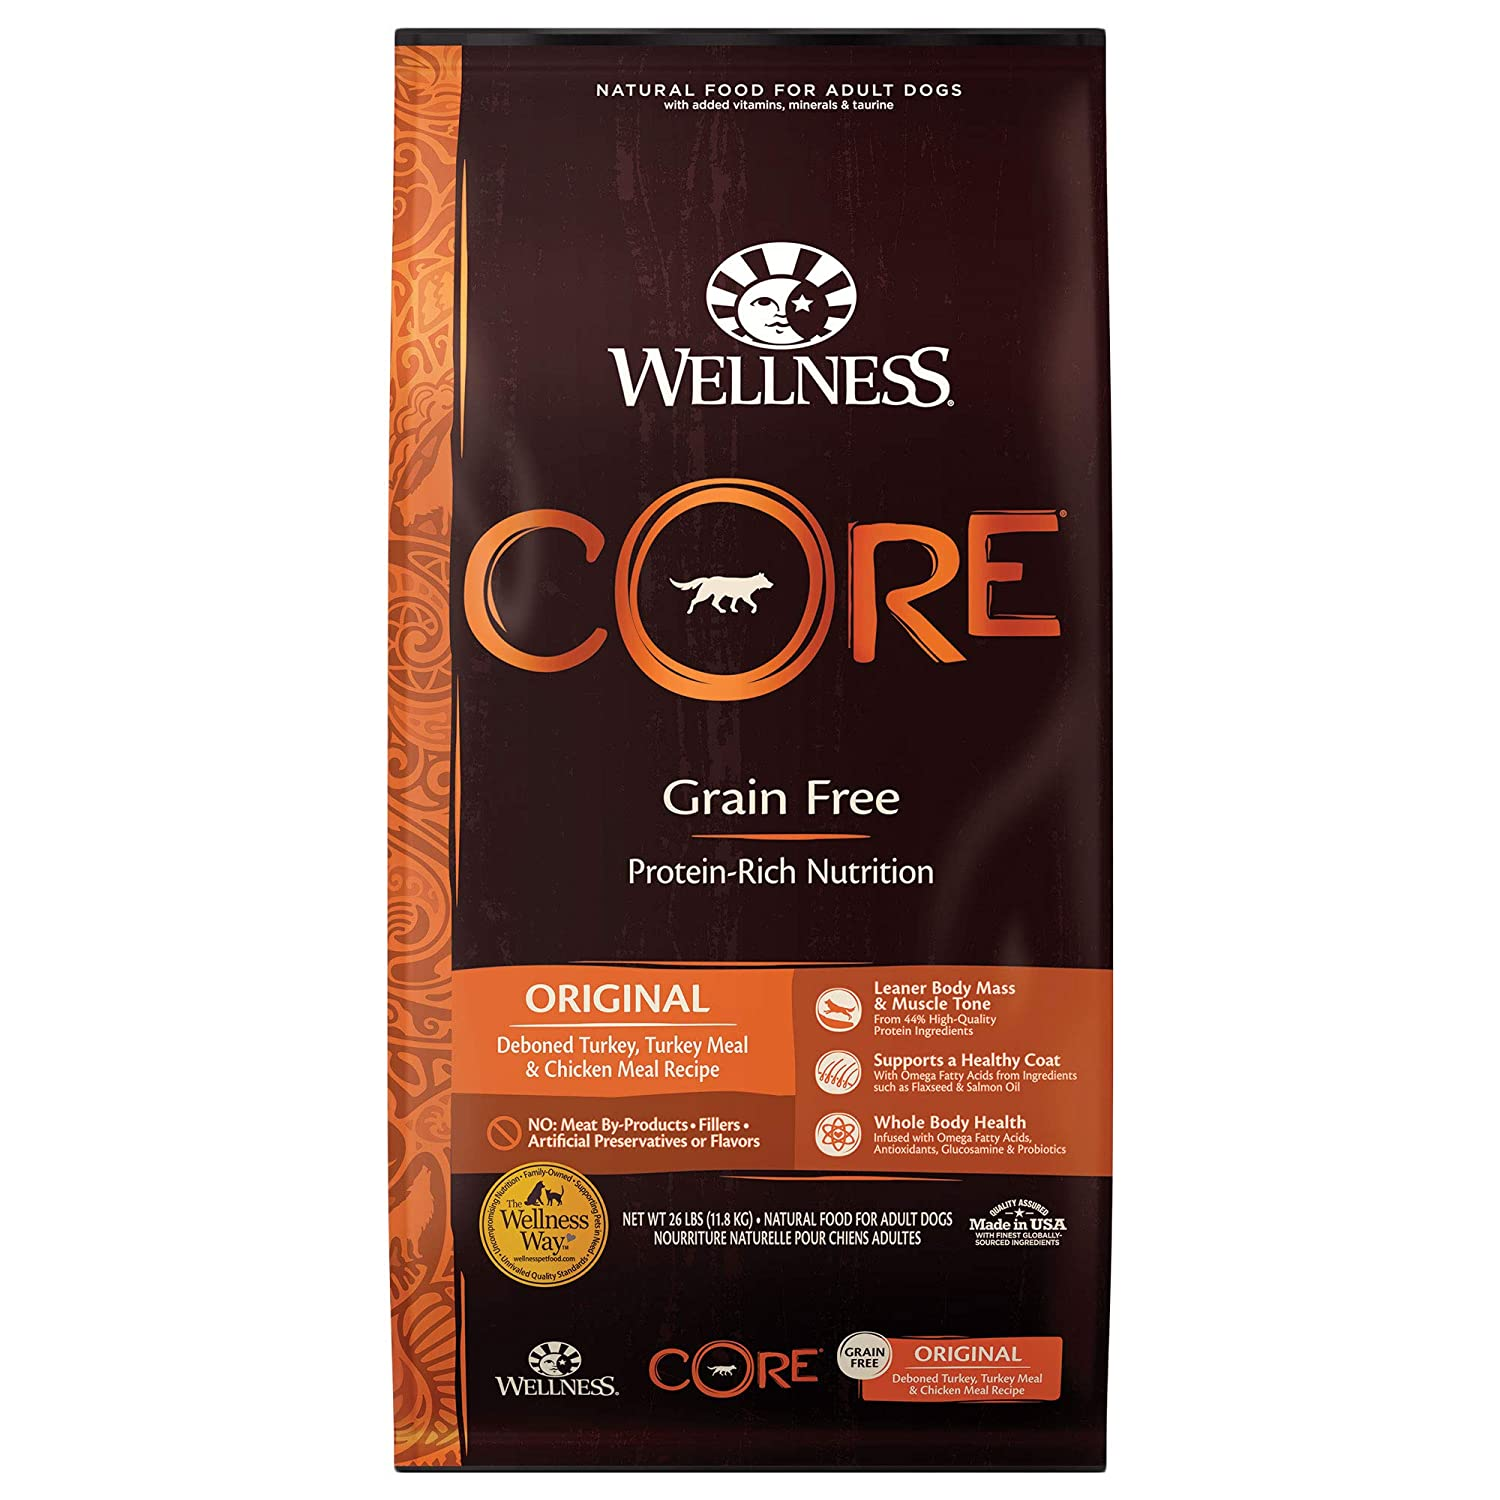 1. Wellness CORE Grain-Free Original